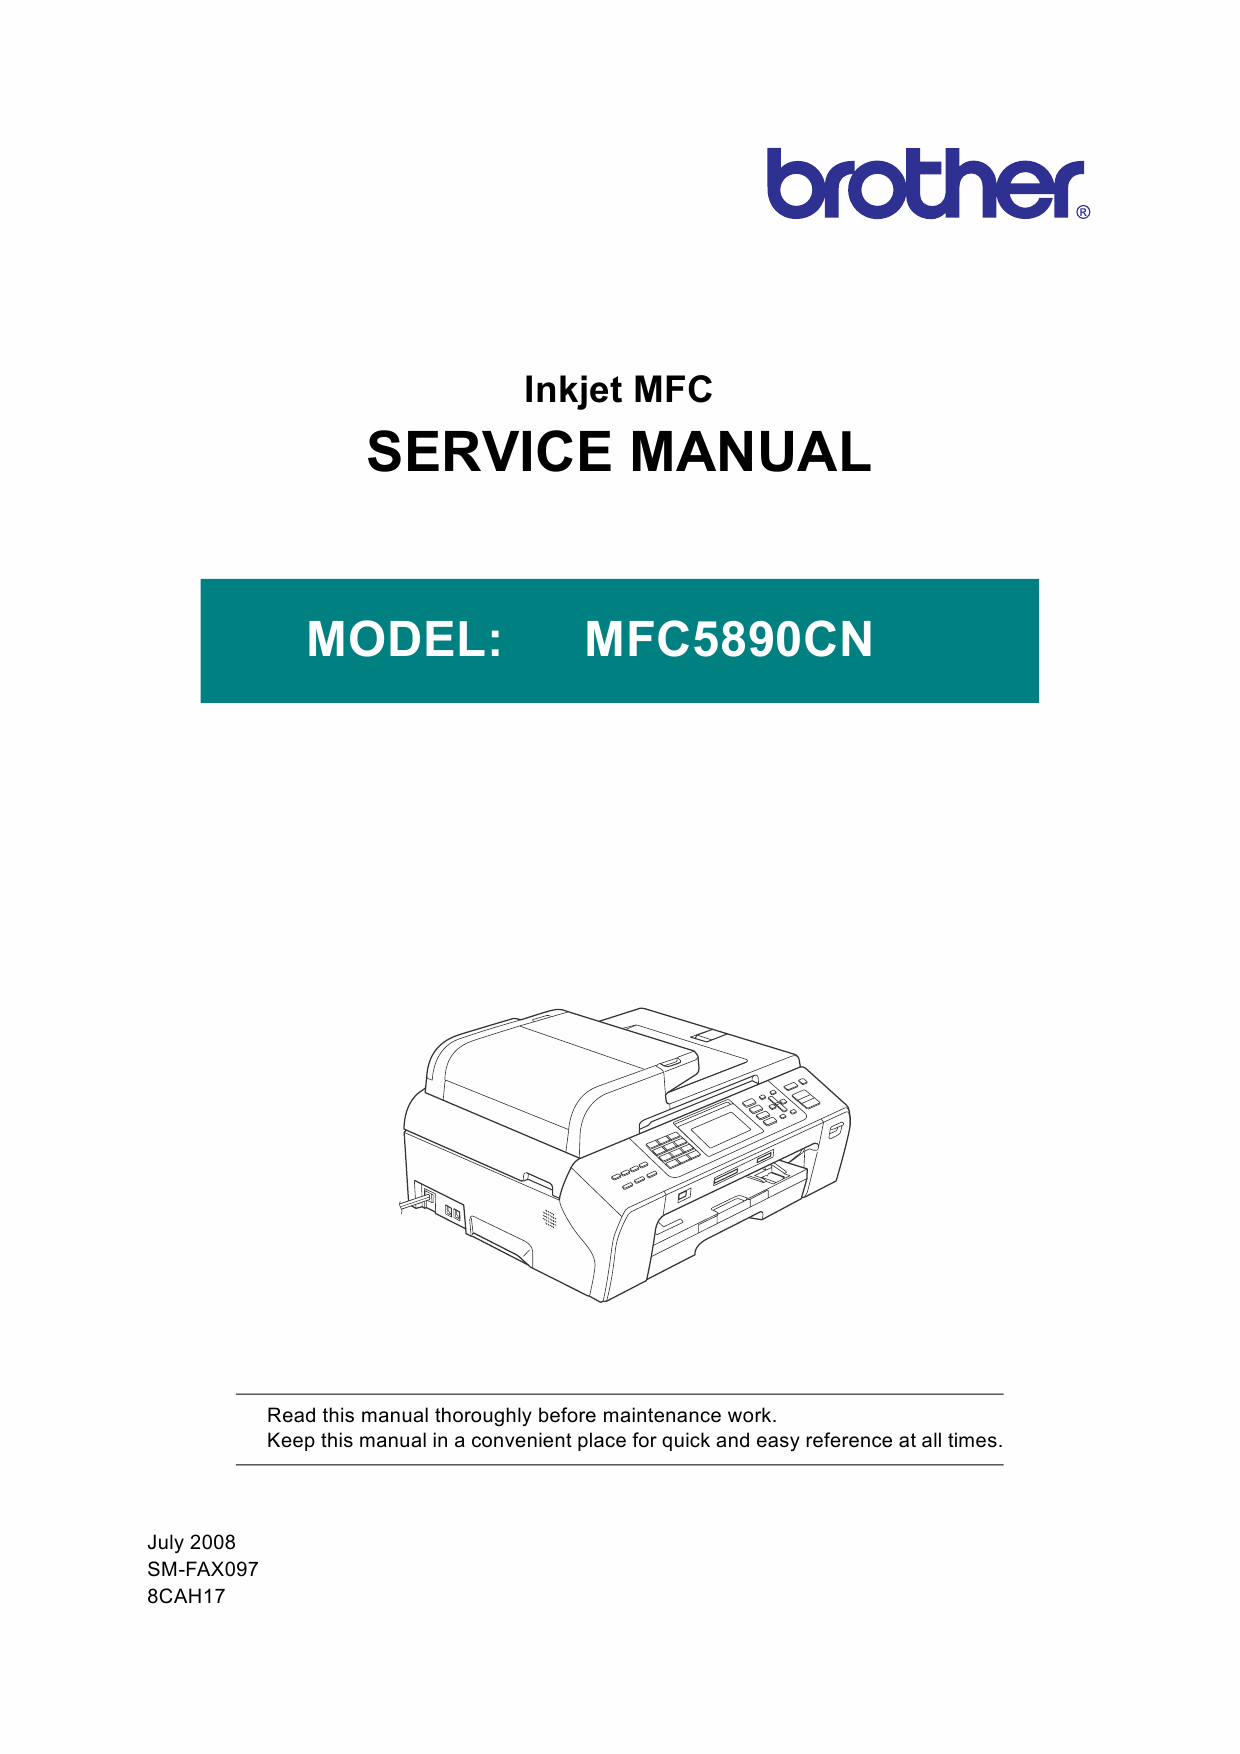 Brother Inkjet-MFC 5890CN Service Manual and Parts-1